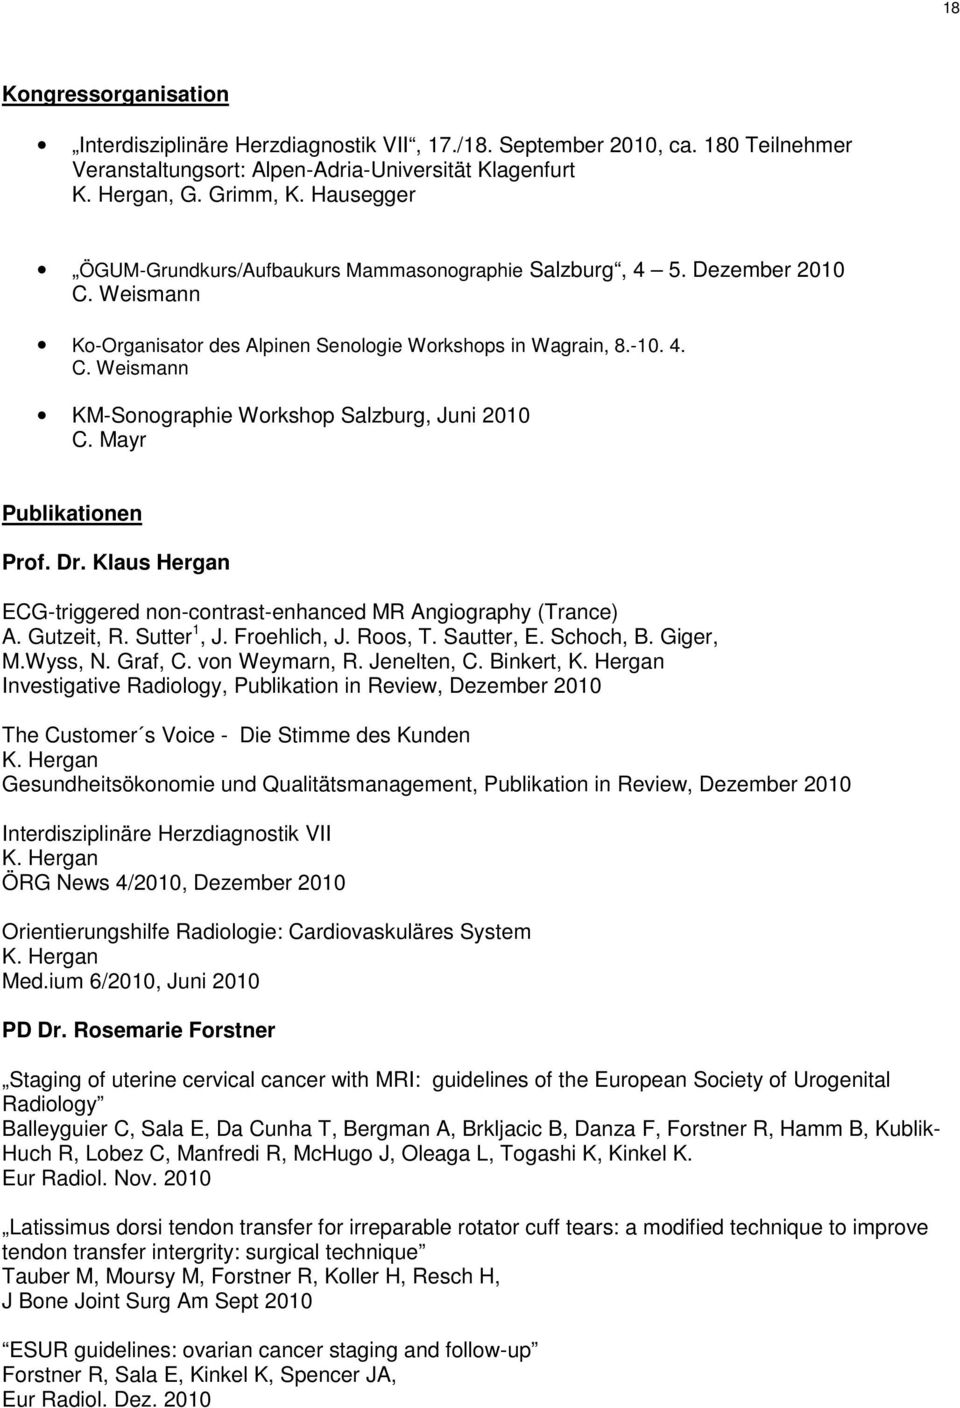 Mayr Publikationen Prof. Dr. Klaus Hergan ECG-triggered non-contrast-enhanced MR Angiography (Trance) A. Gutzeit, R. Sutter 1, J. Froehlich, J. Roos, T. Sautter, E. Schoch, B. Giger, M.Wyss, N.